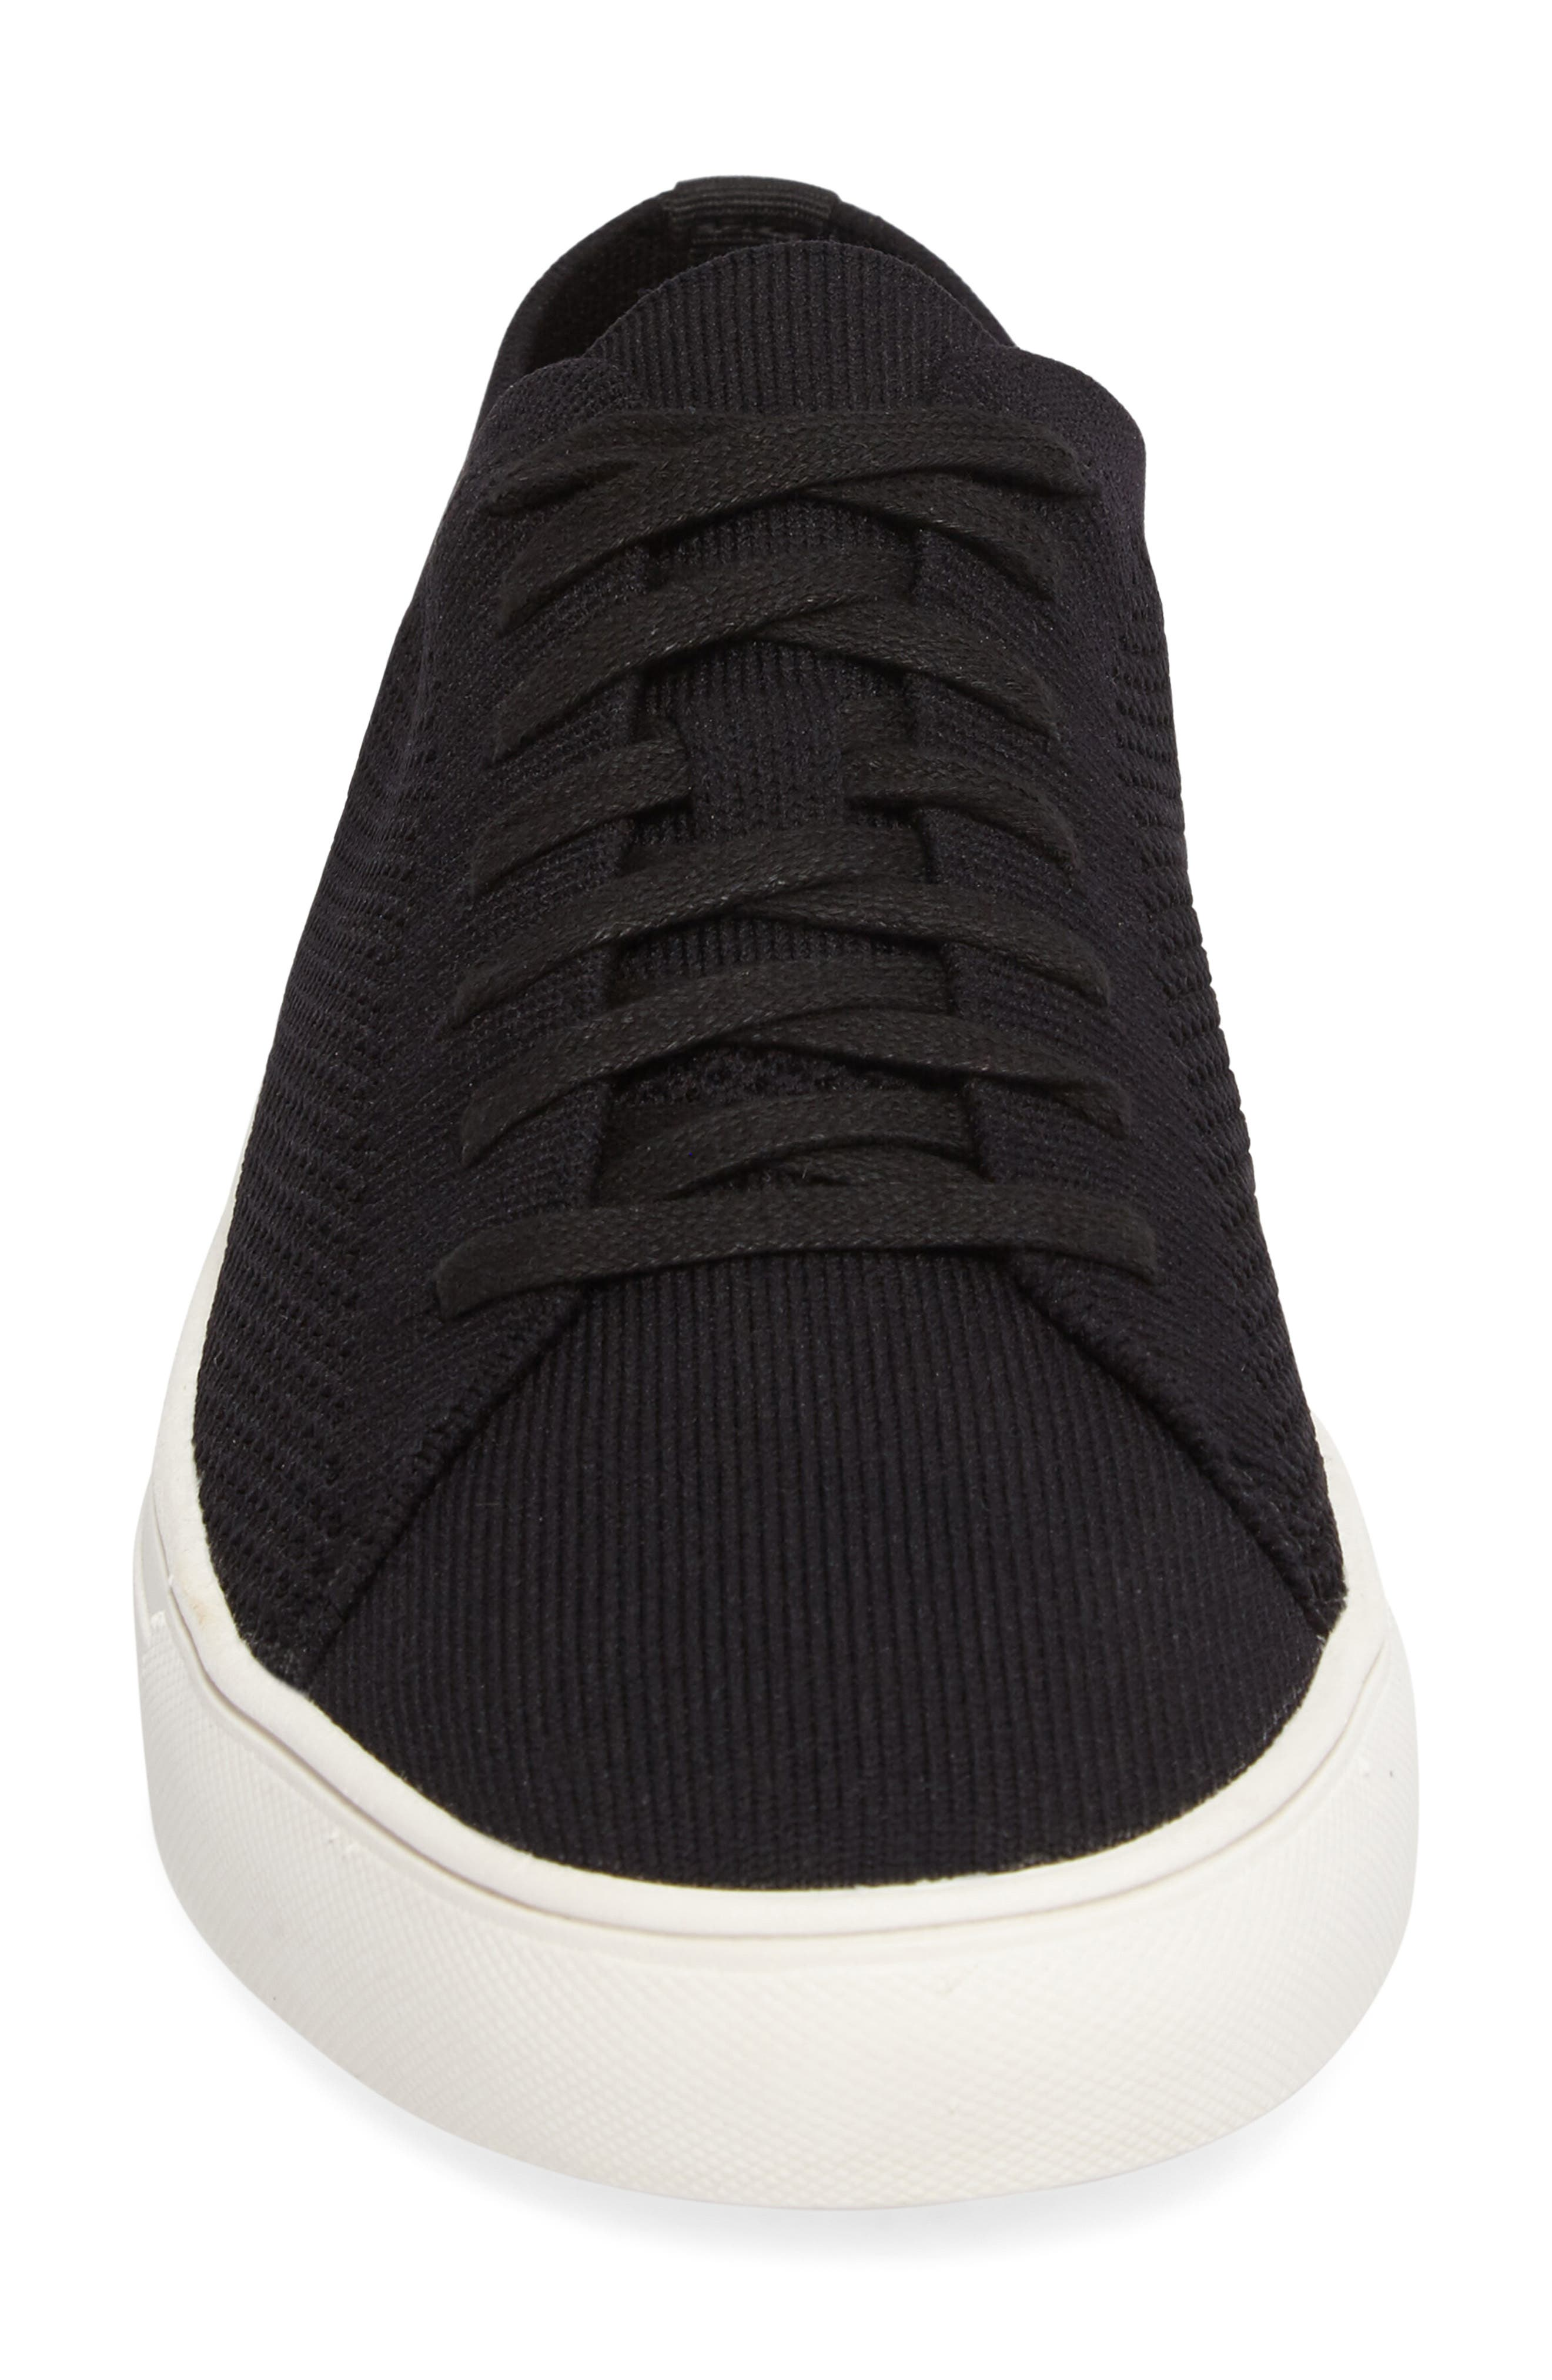 Alternate Image 4  - Reaction Kenneth Cole On the Road Woven Sneaker (Men)